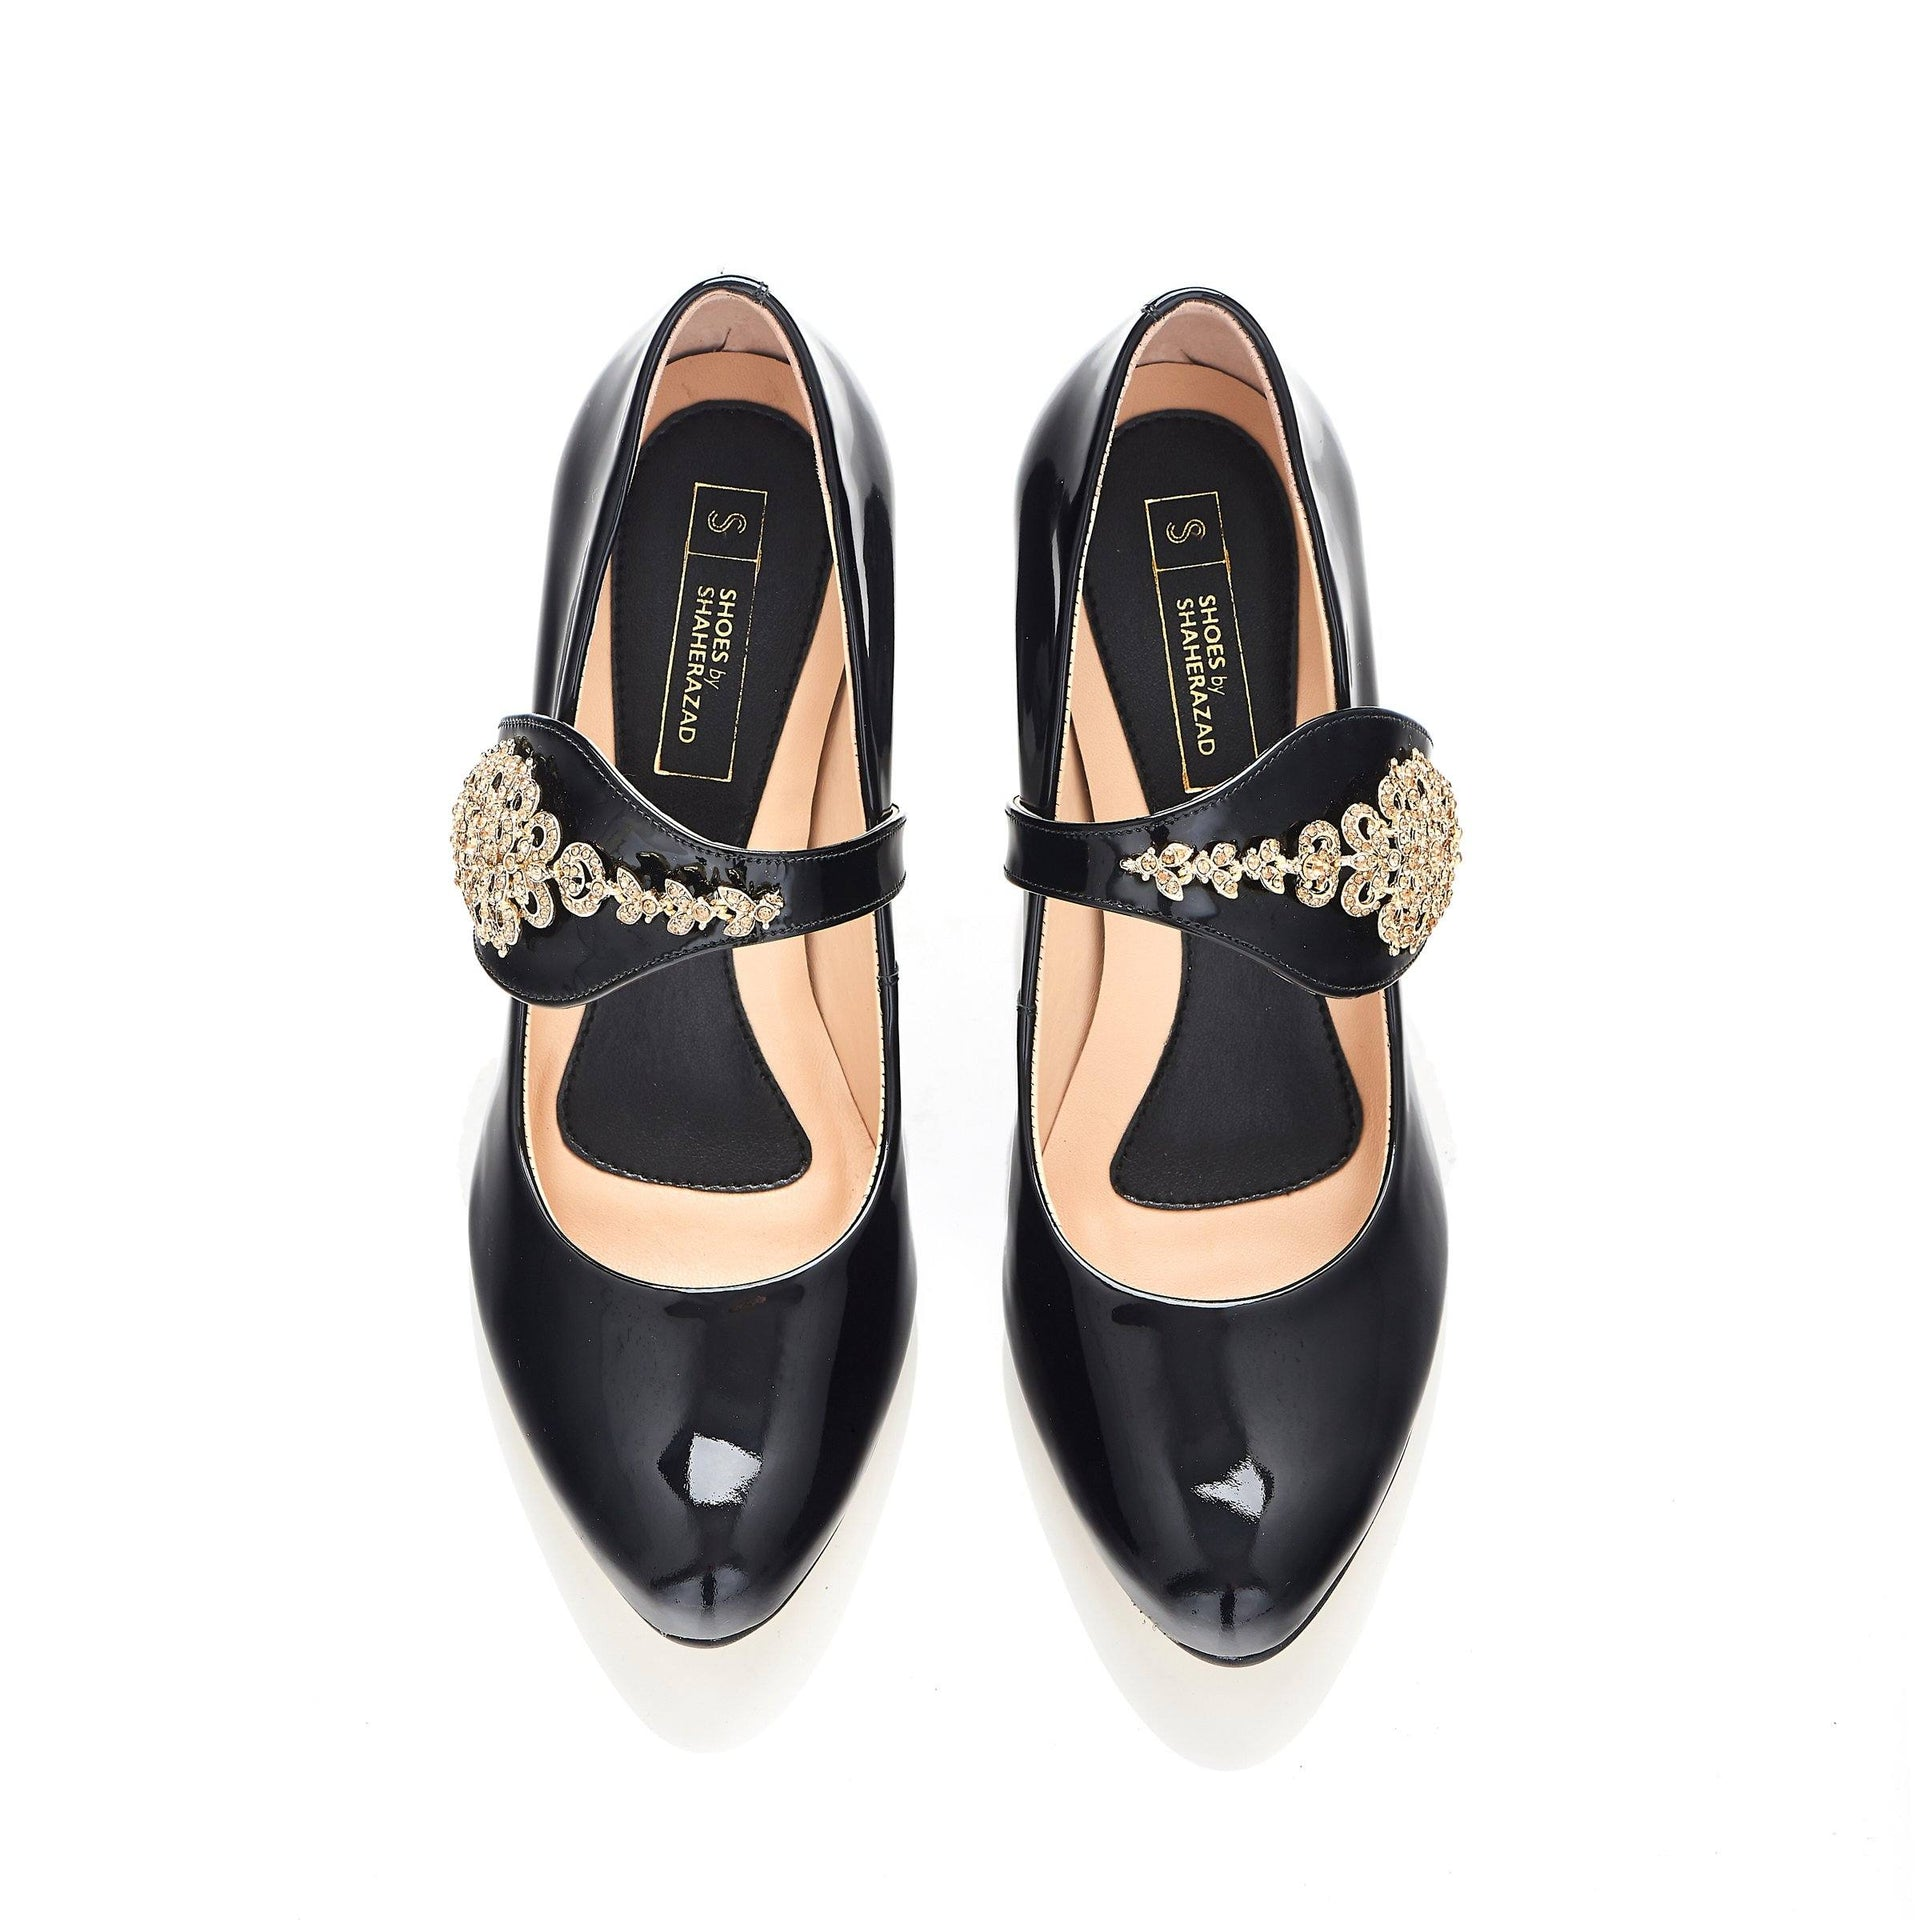 Dream Then Do in Gold Gems - Block Heels - Black Leather - Shoes by Shaherazad